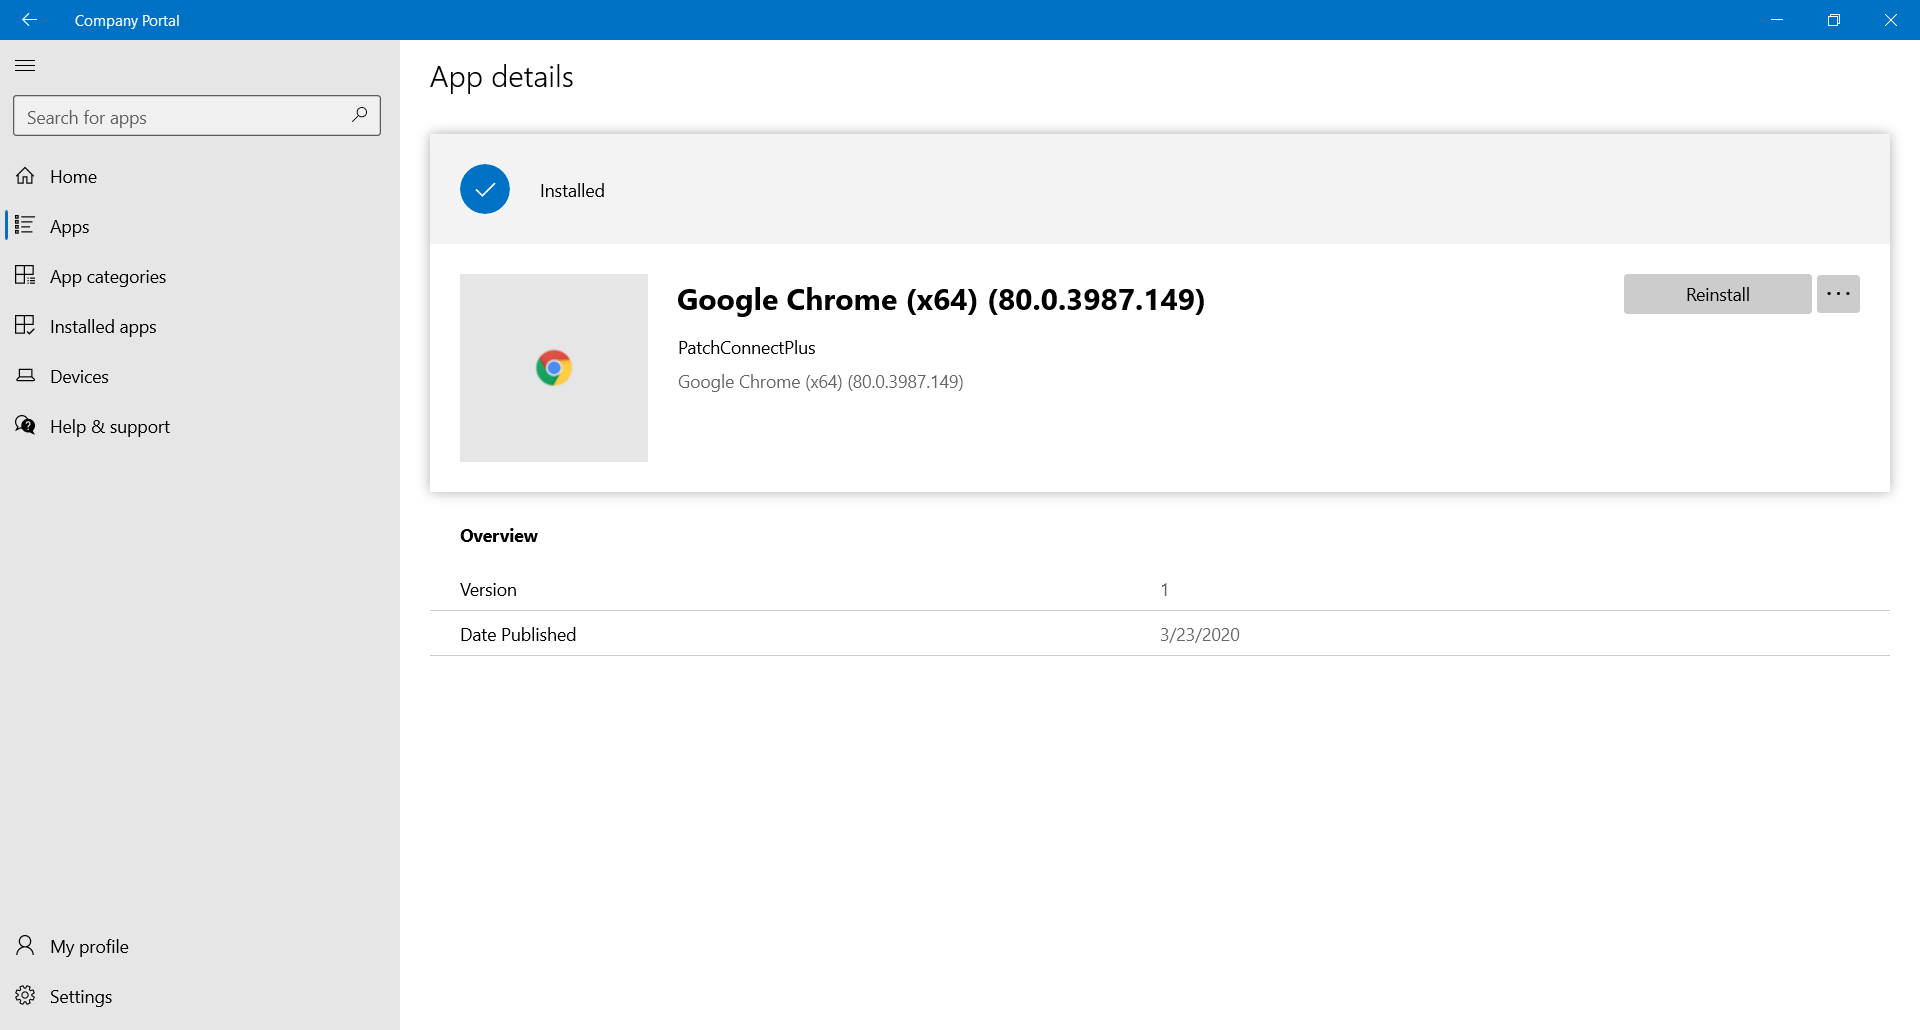 Deploy third party applications in Intune